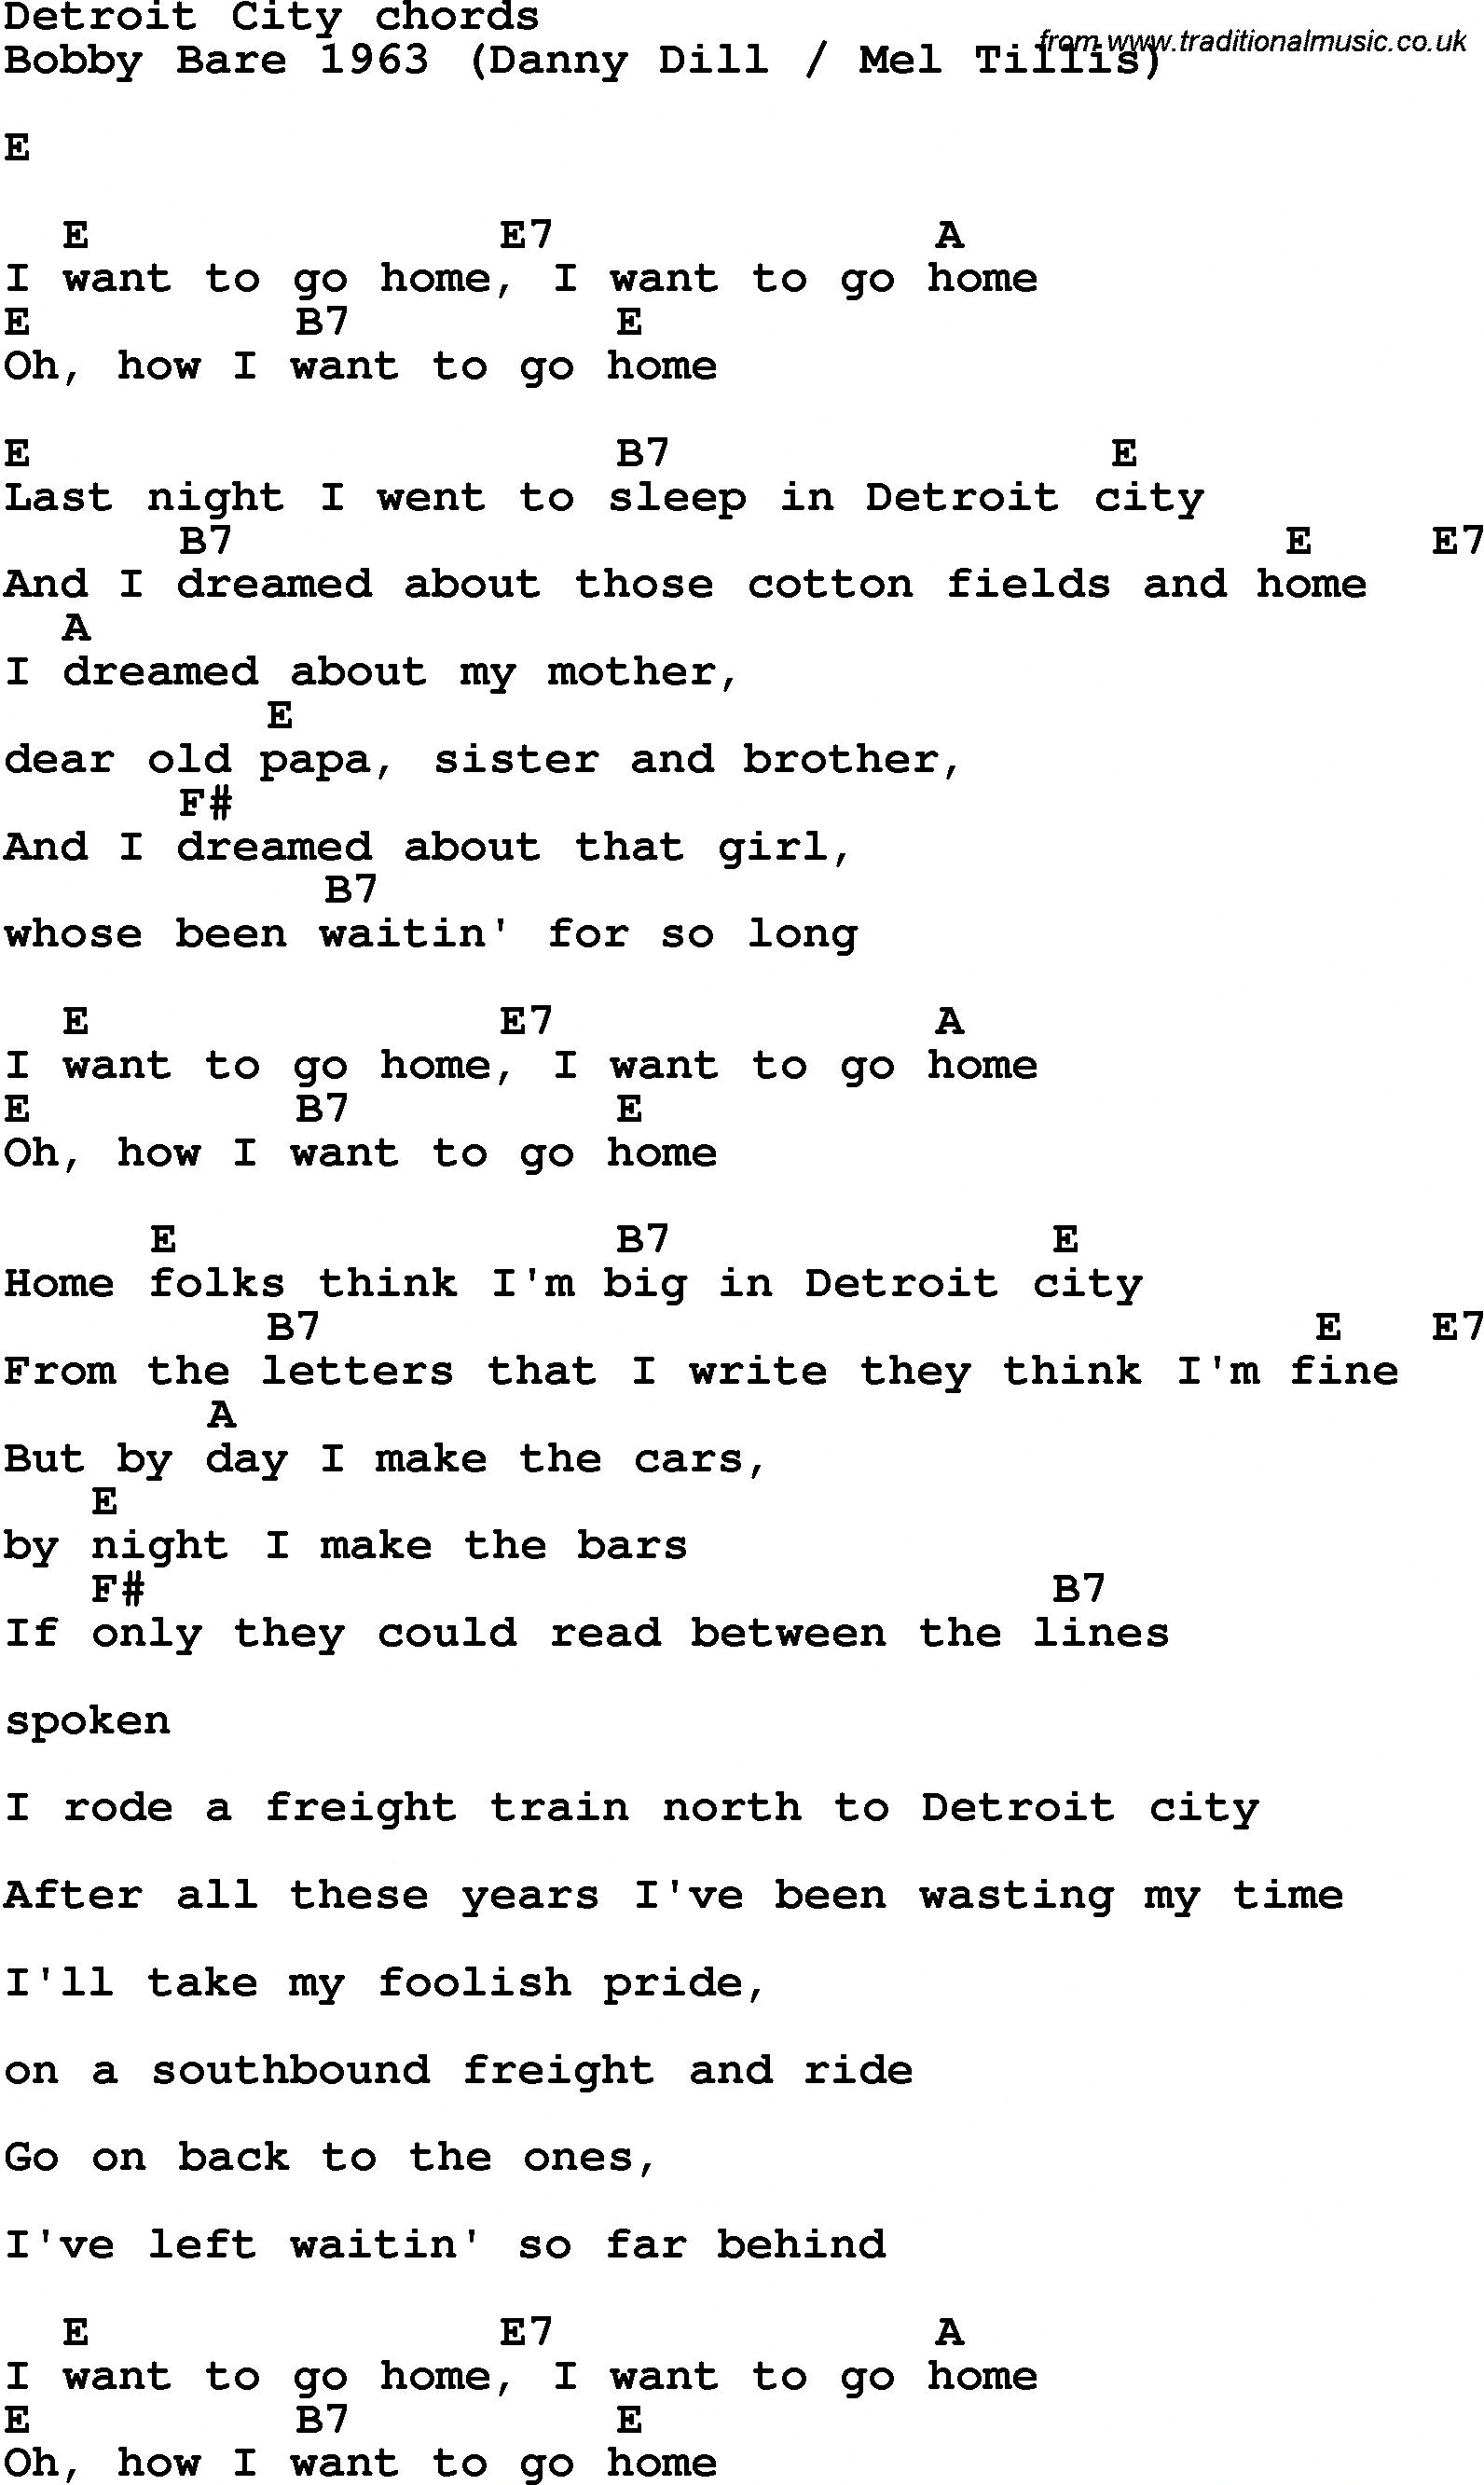 Song Lyrics With Guitar Chords For Detroit City Guitarlessons Guitar Lessons Songs Lyrics And Chords Learn Guitar Chords